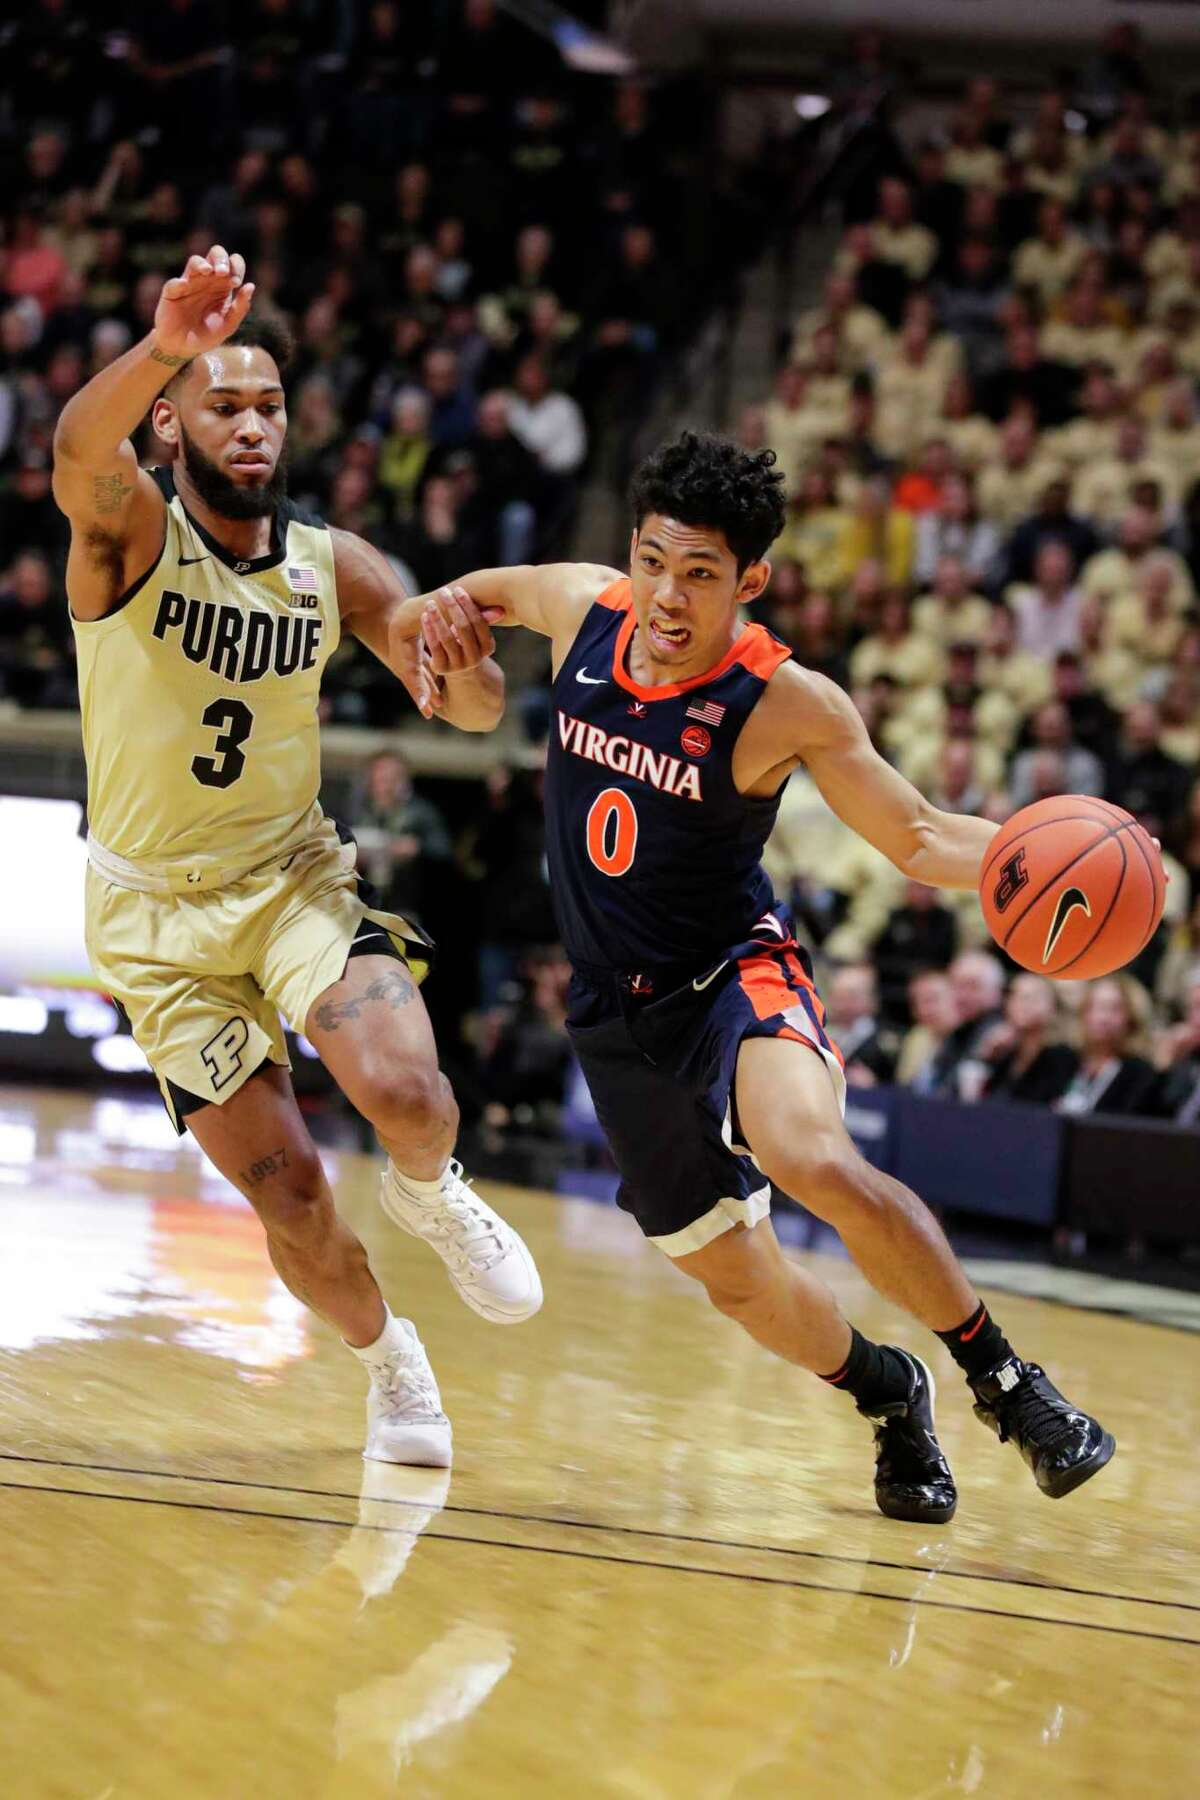 Virginia guard Kihei Clark (0) drives on Purdue guard Jahaad Proctor (3) during the first half of an NCAA college basketball game in West Lafayette, Ind., Wednesday, Dec. 4, 2019. (AP Photo/Michael Conroy)